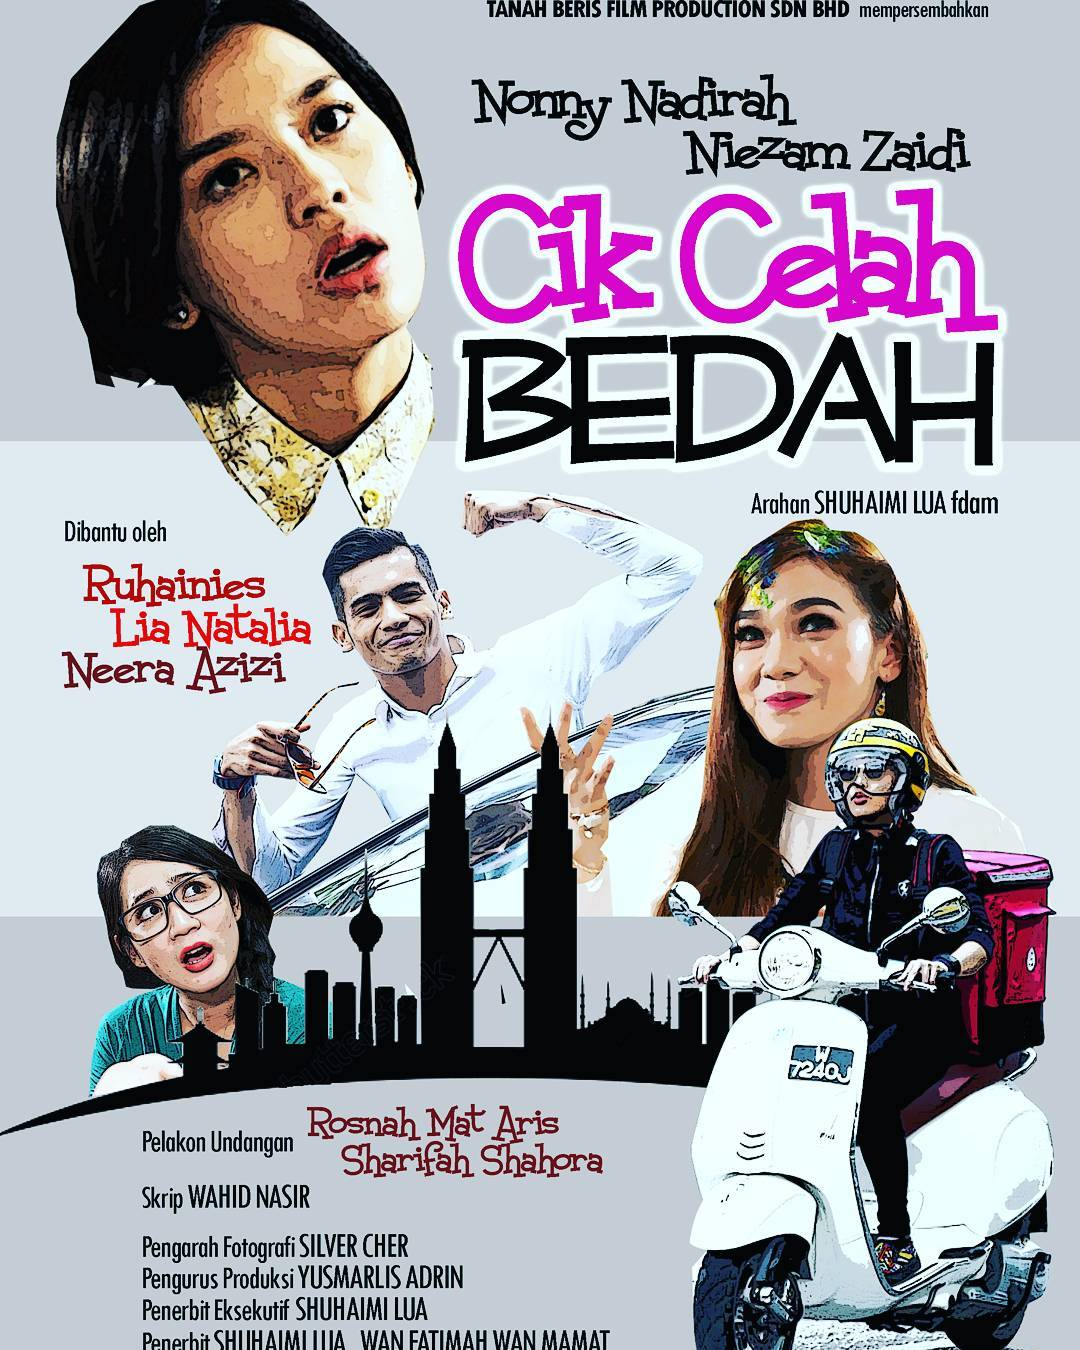 Sinopsis Telemovie Bedah Motor (TV9)